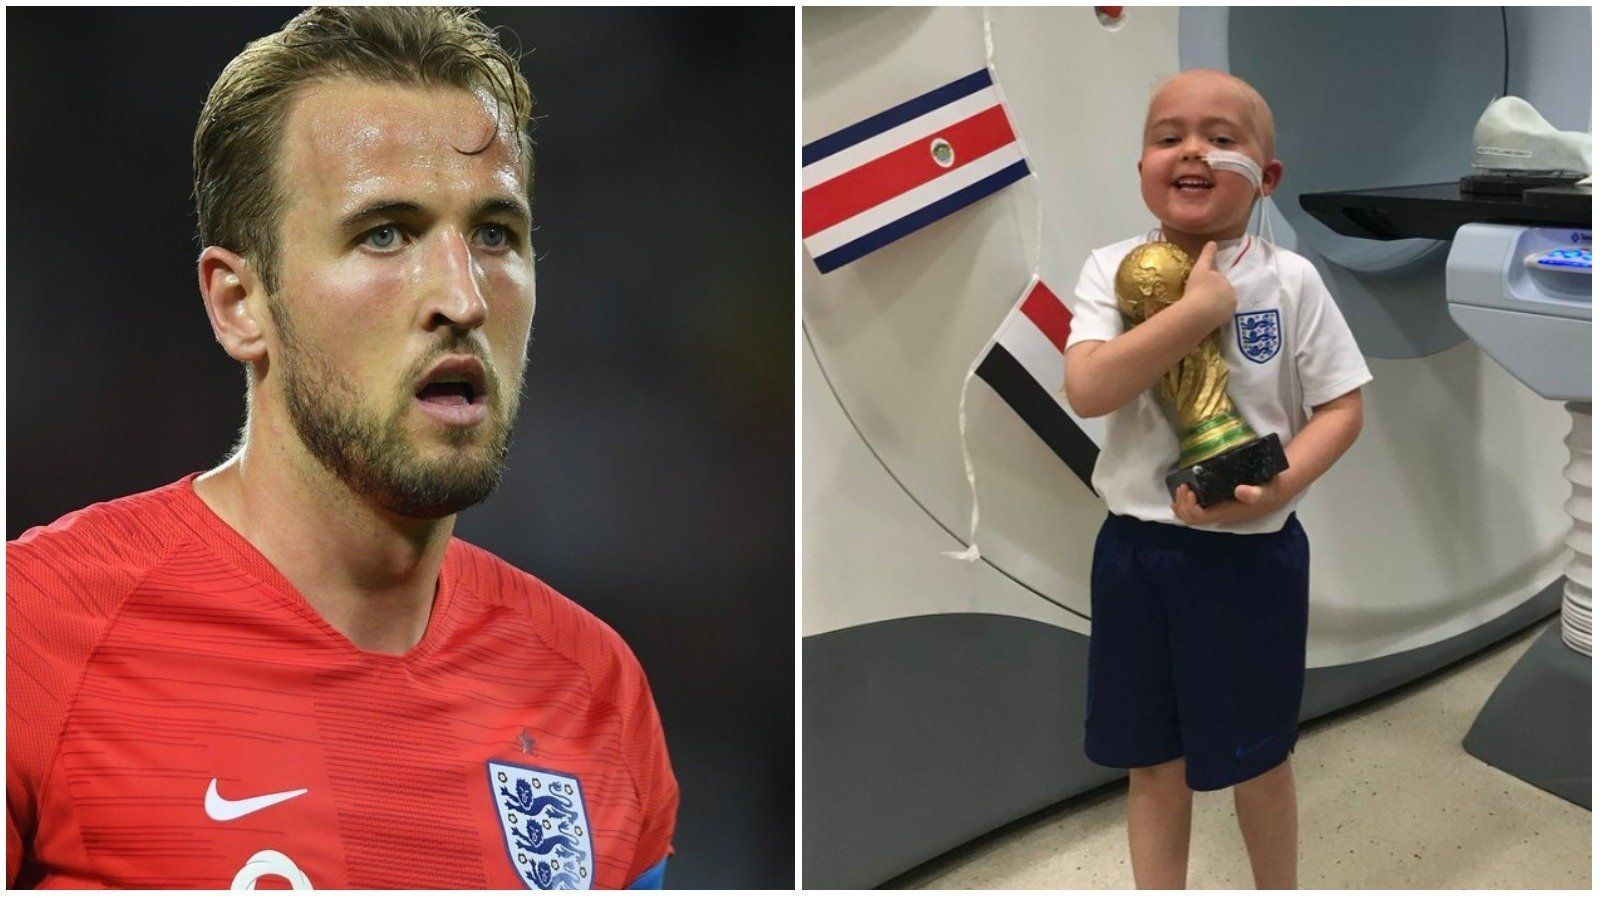 'You're An Inspiration': Harry Kane Tells Brave Ben Who Wished For His Own World Cup After